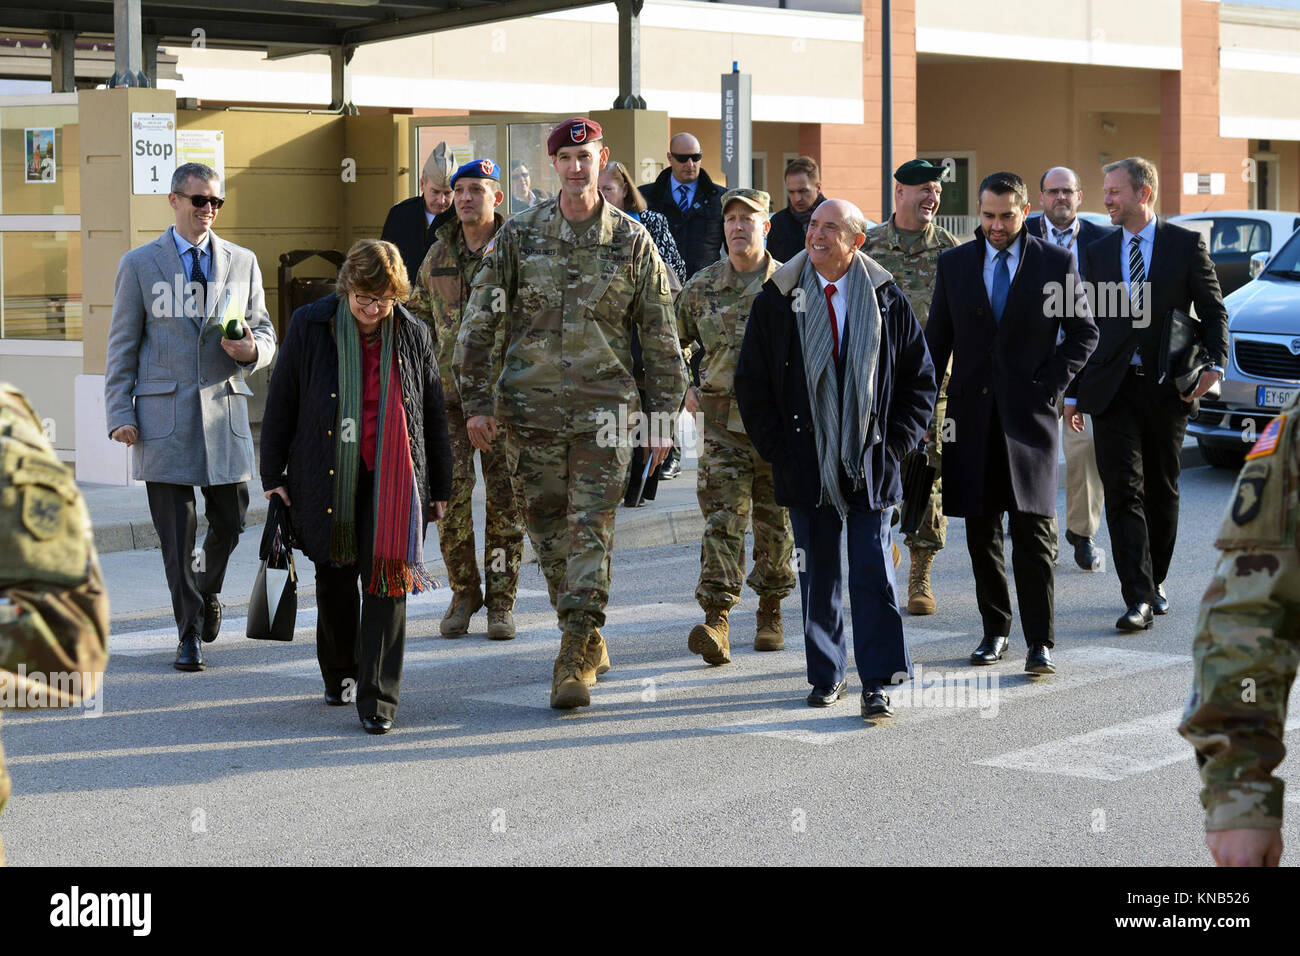 U.S. Ambassador to Italy Lewis Eisenberg visited with leaders from U.S. forces at Caserma Del Din, Vicenza, Italy, Stock Photo